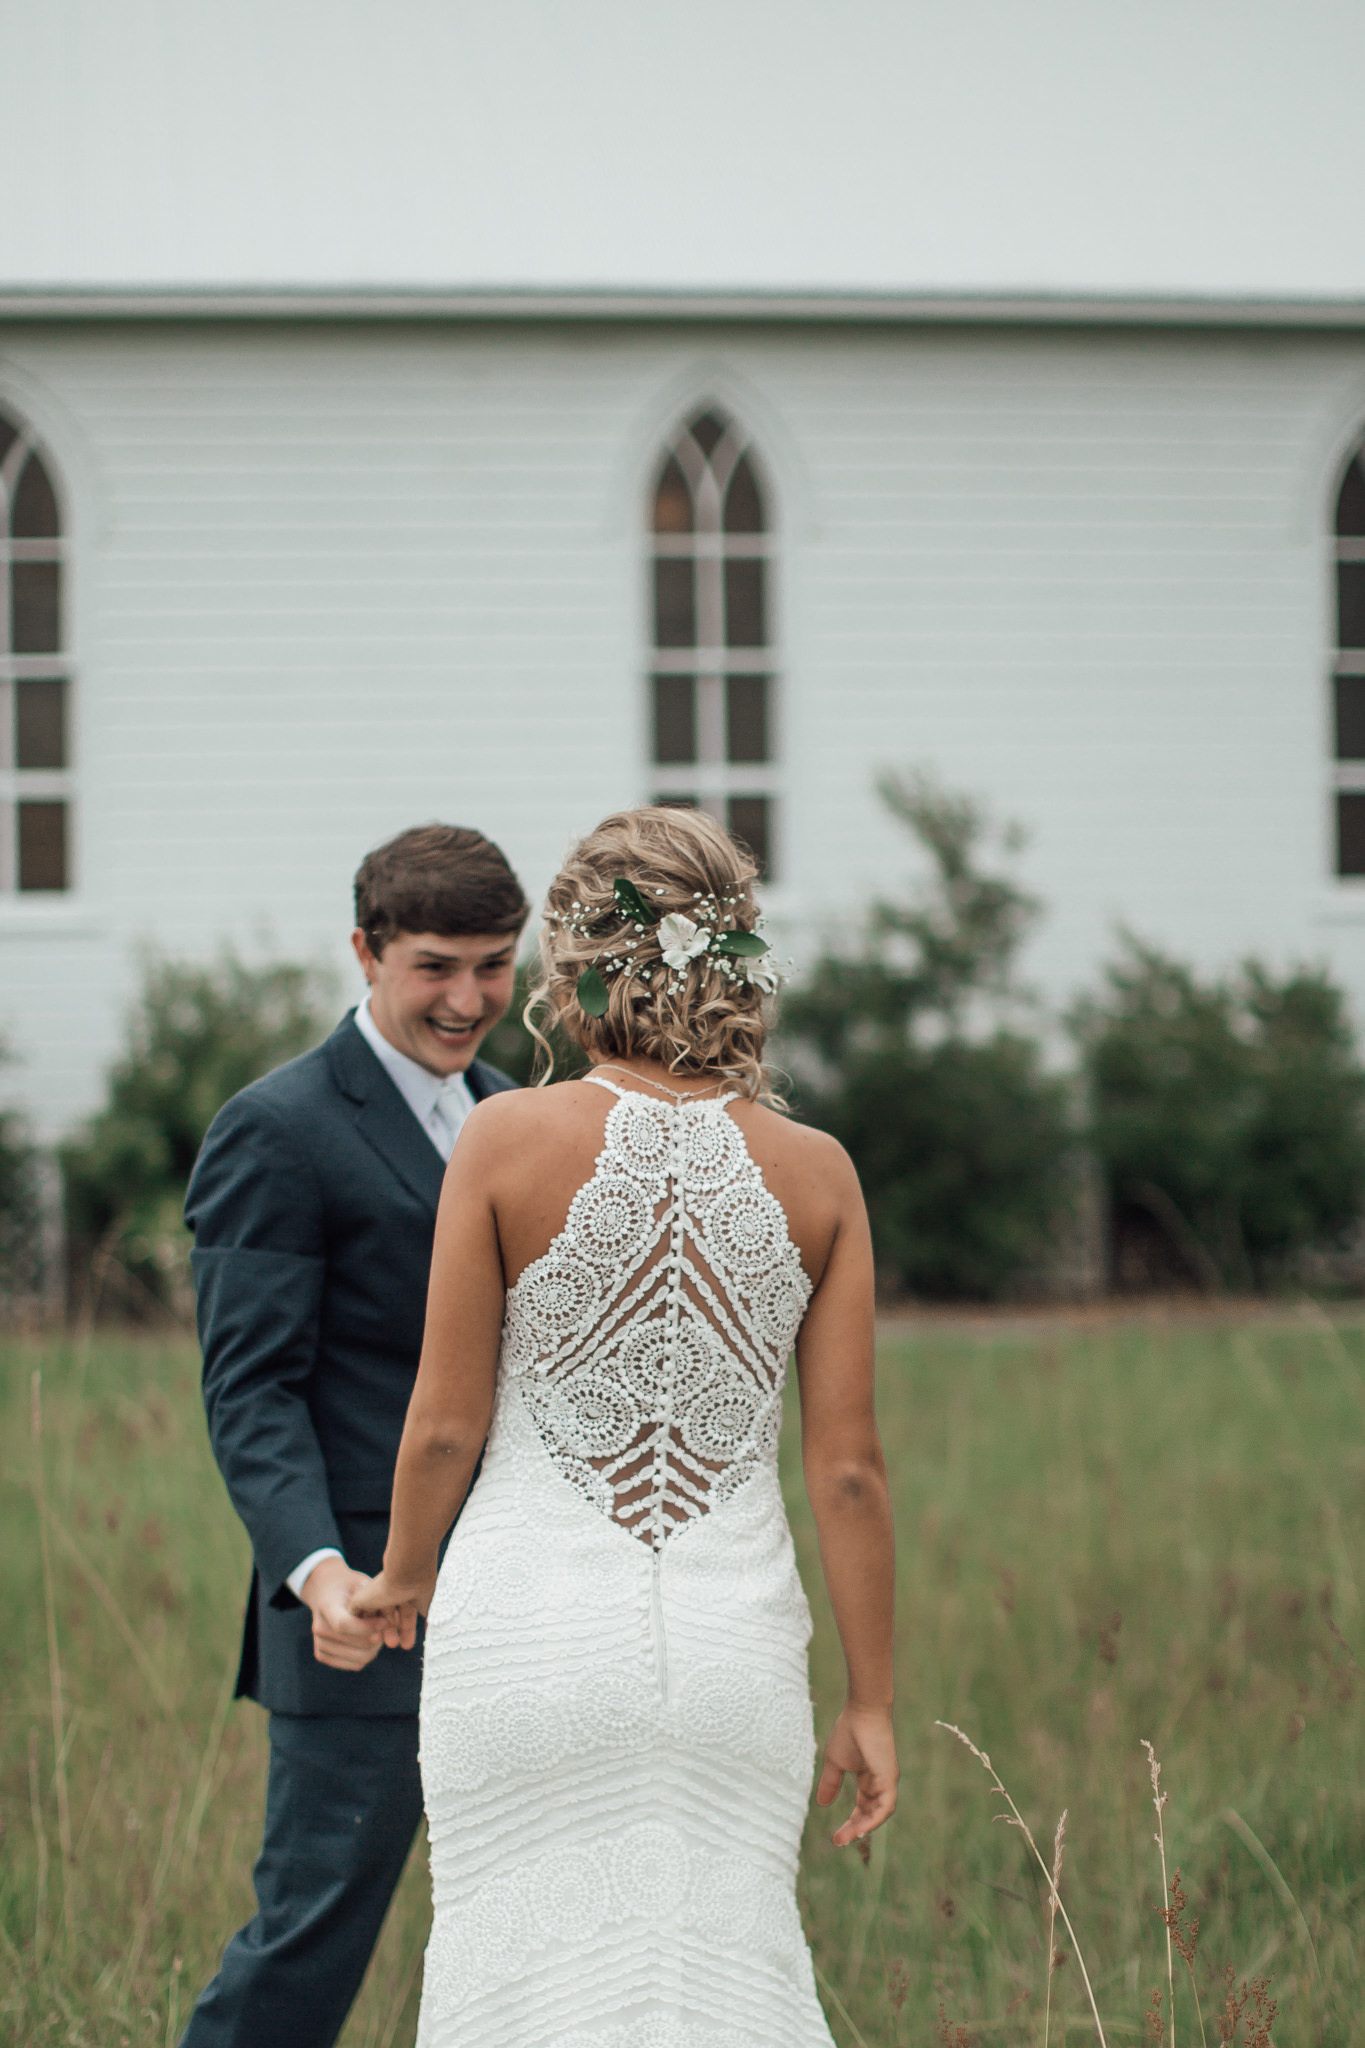 cassie-cook-photography-memphis-wedding-photographer-the-chapel-at-plein-air-sneed-wedding-28.jpg